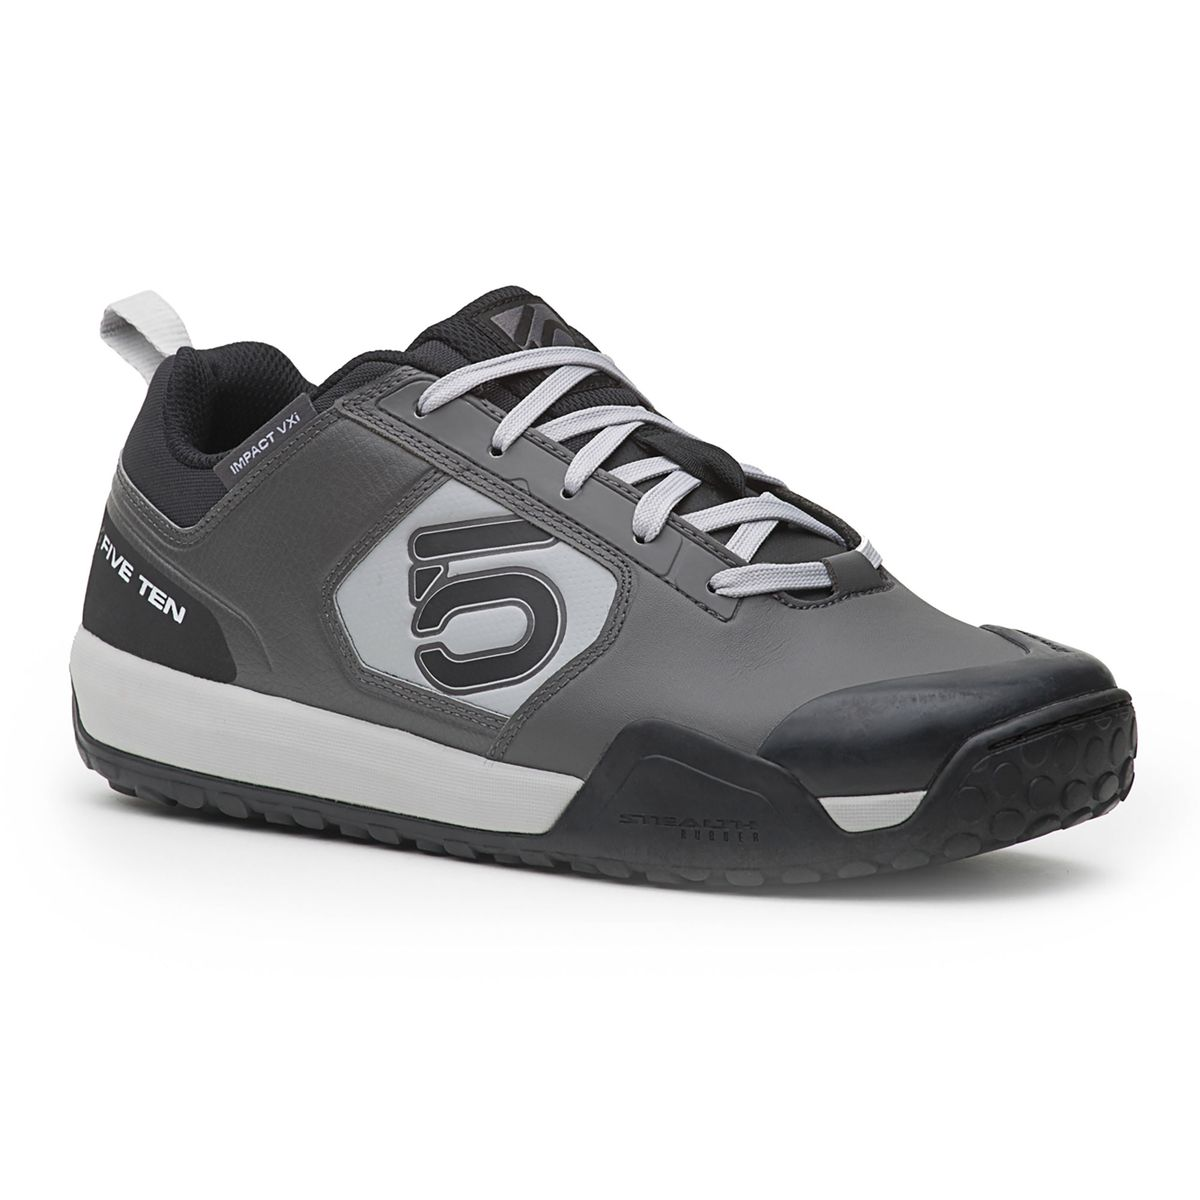 FIVE TEN IMPACT VXI FR/Dirt shoes | Shoes and overlays